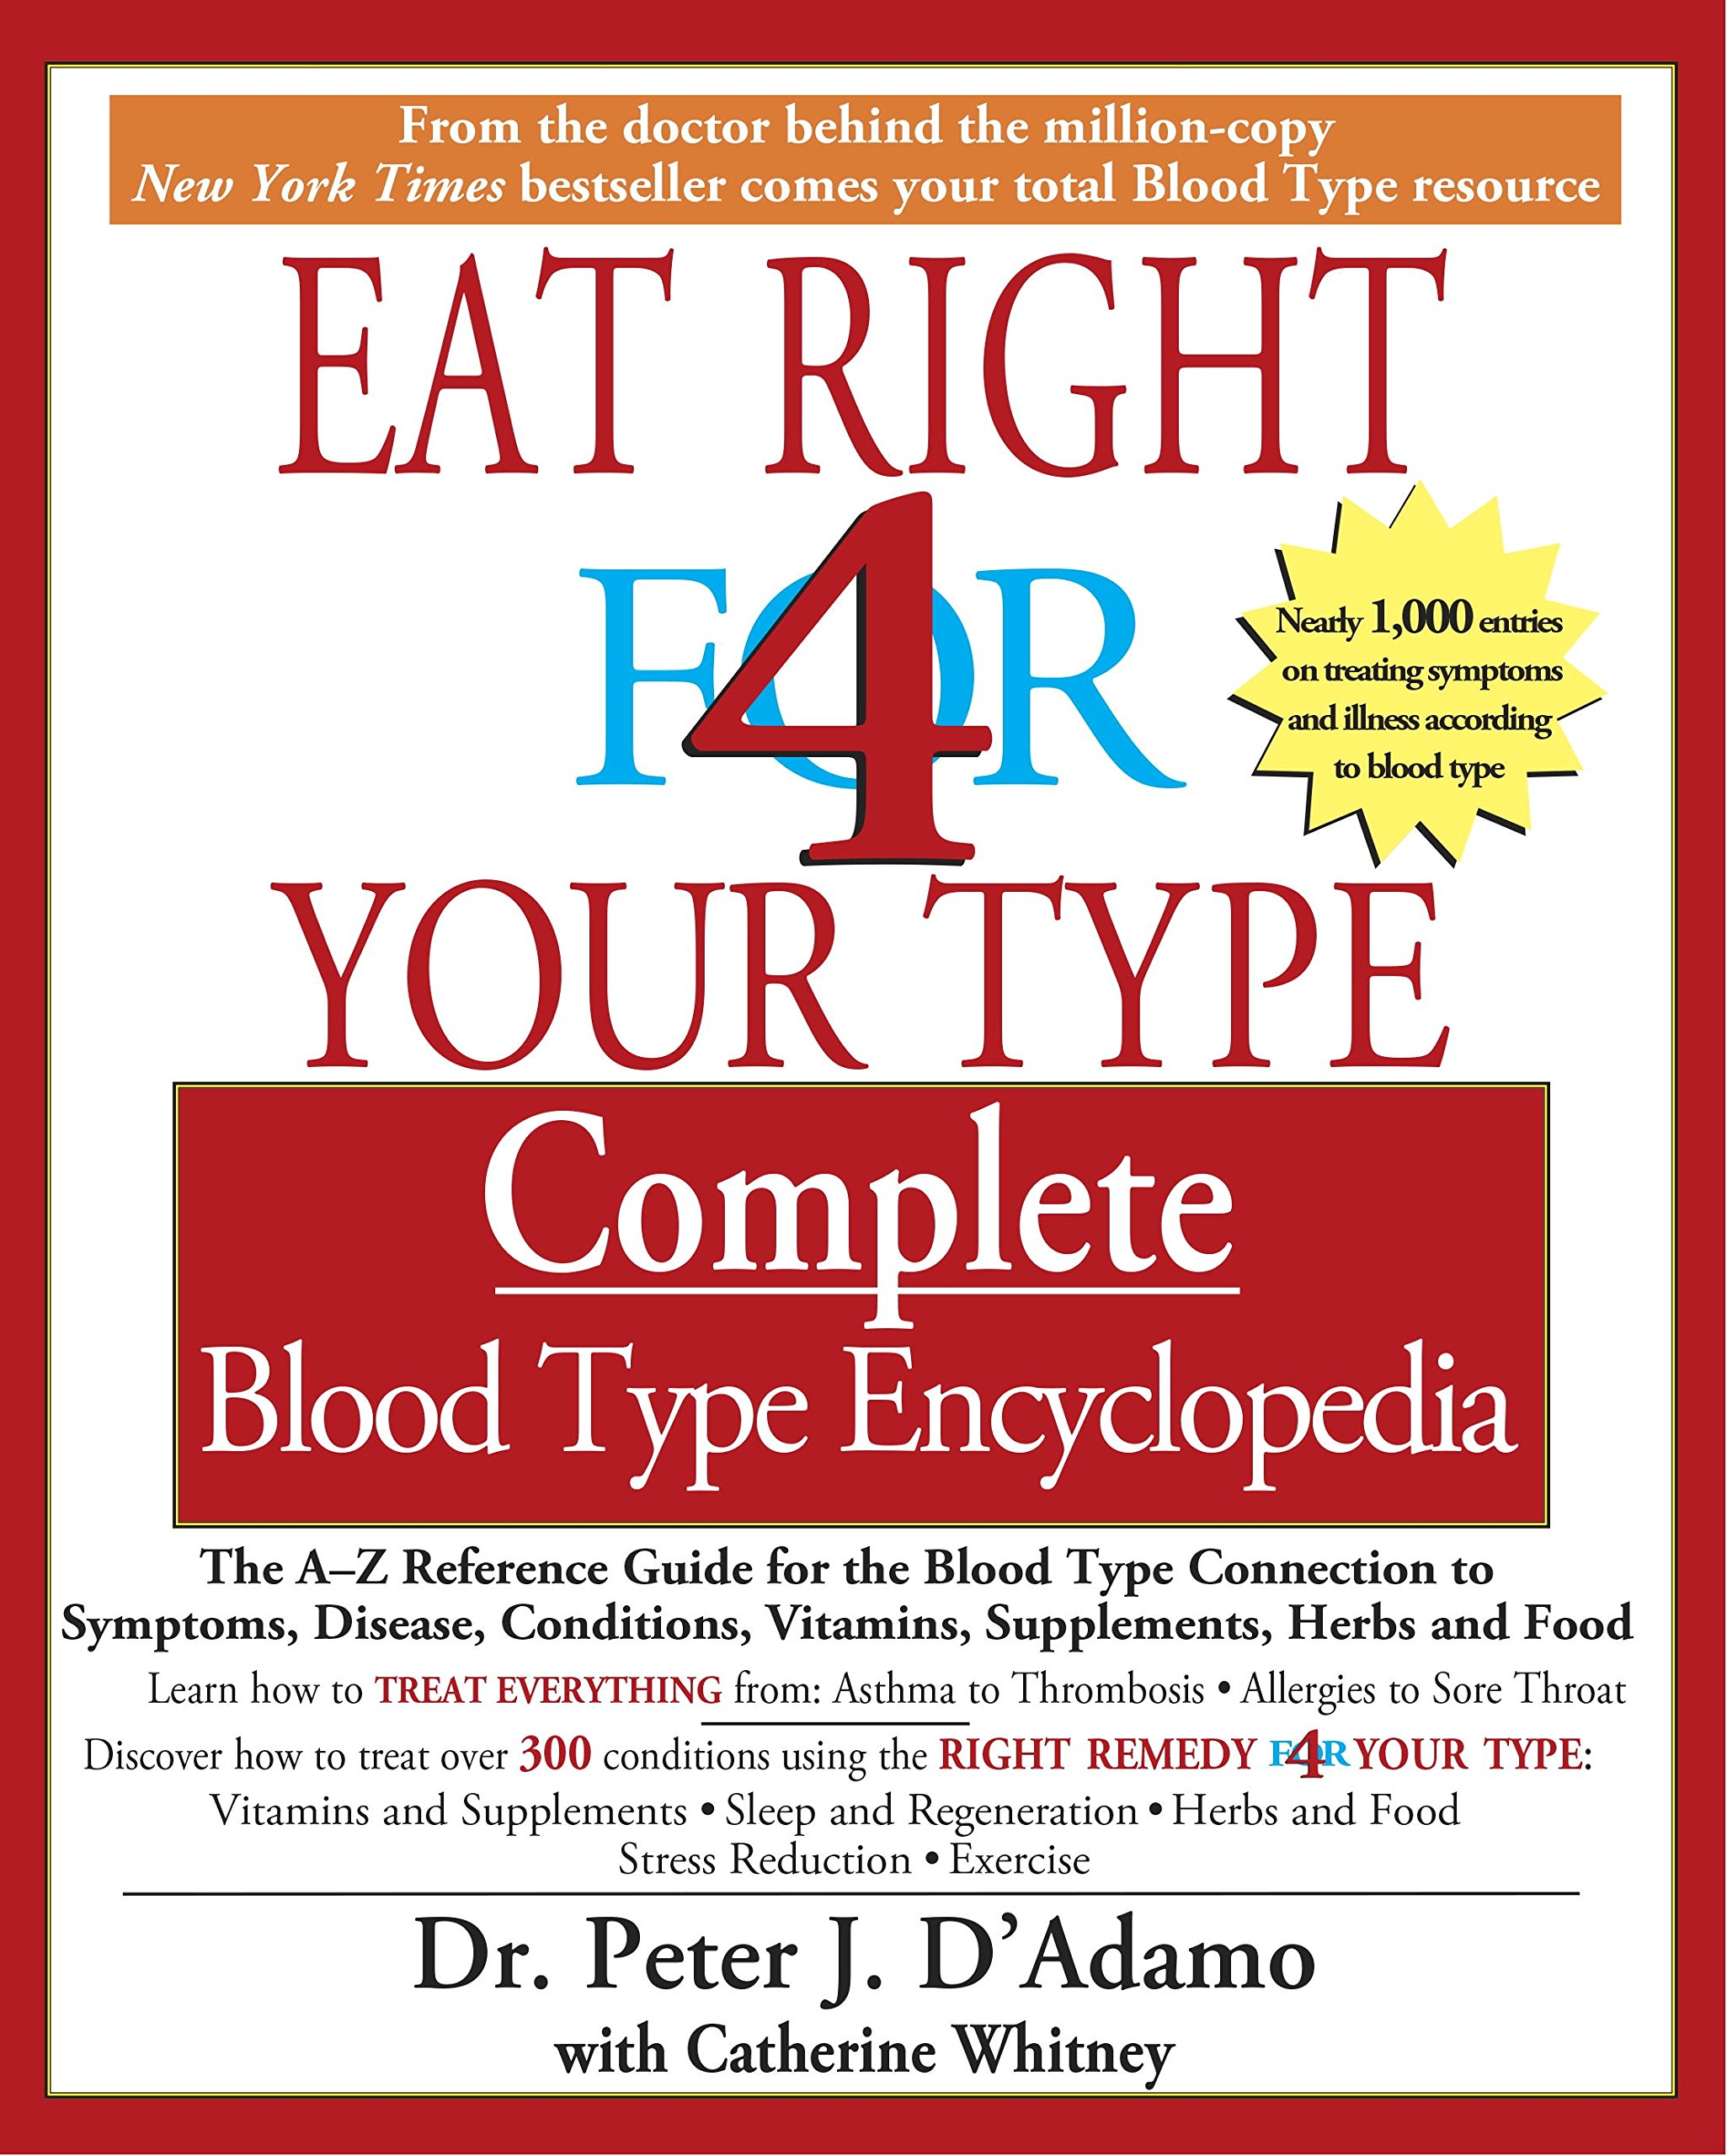 Image OfEat Right 4 Your Type Complete Blood Type Encyclopedia: The A-Z Reference Guide For The Blood Type Connection To Sympoms, ...